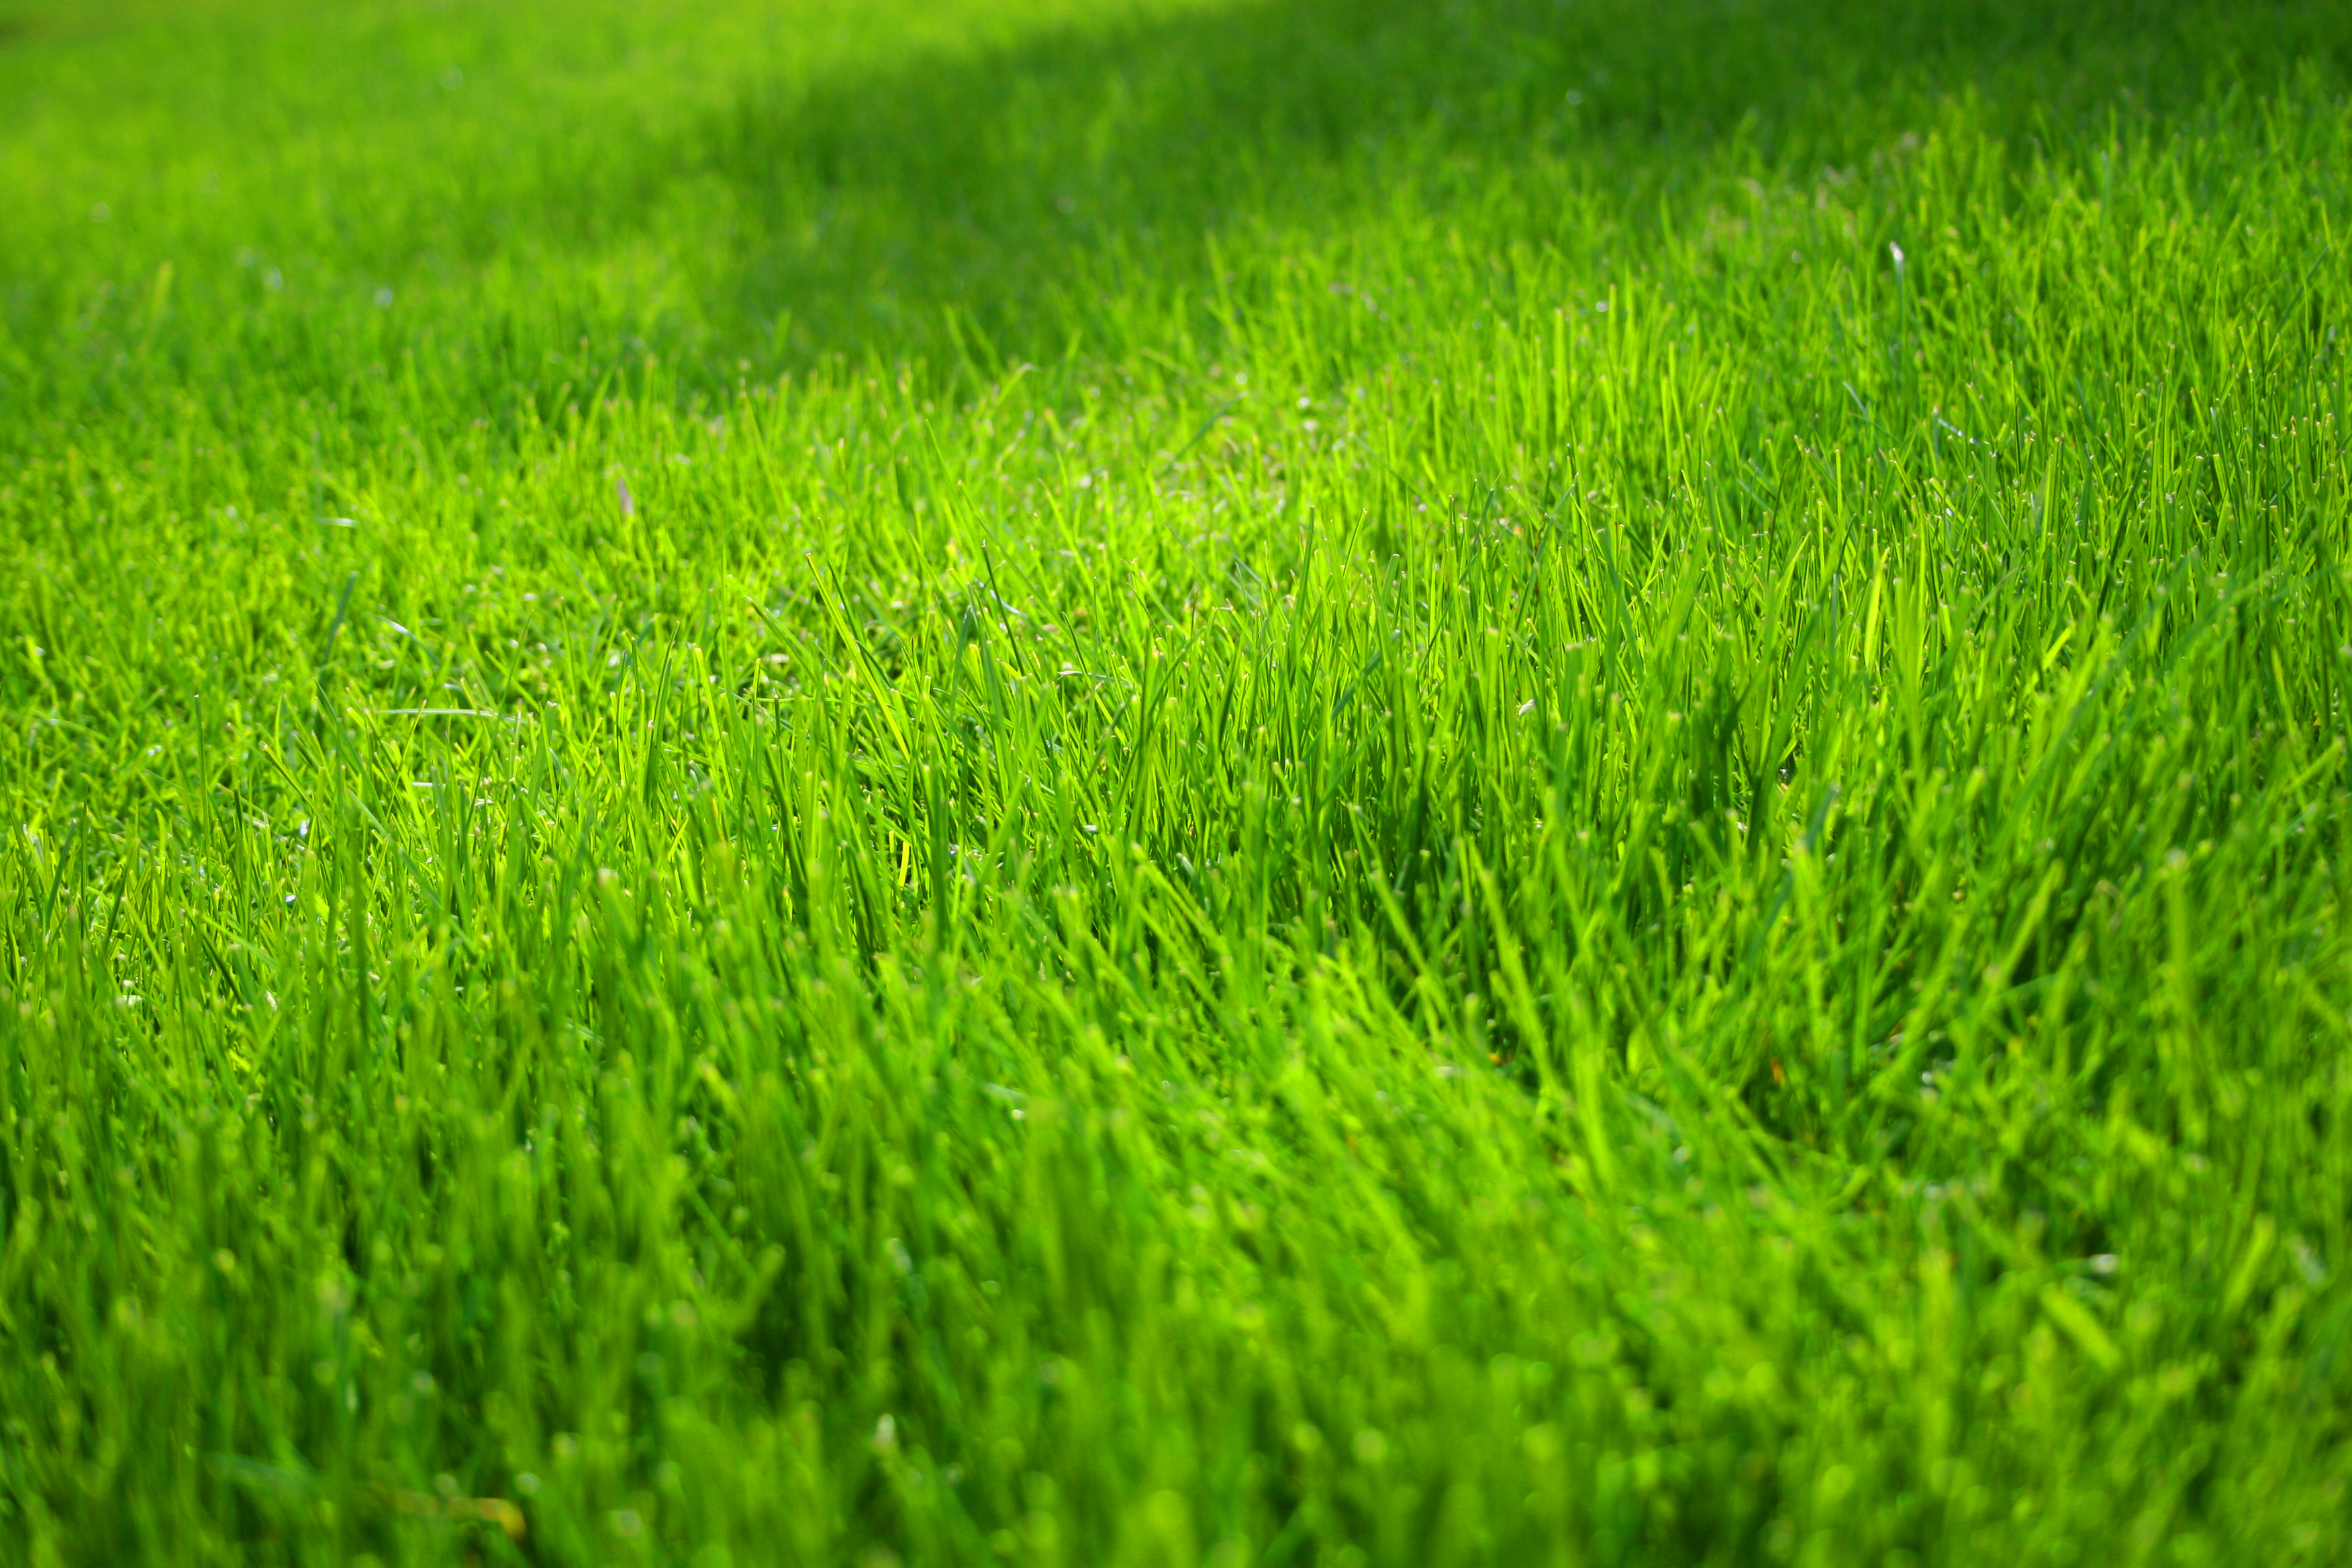 Grass images free wallpaper for Tipos de cesped natural para jardin